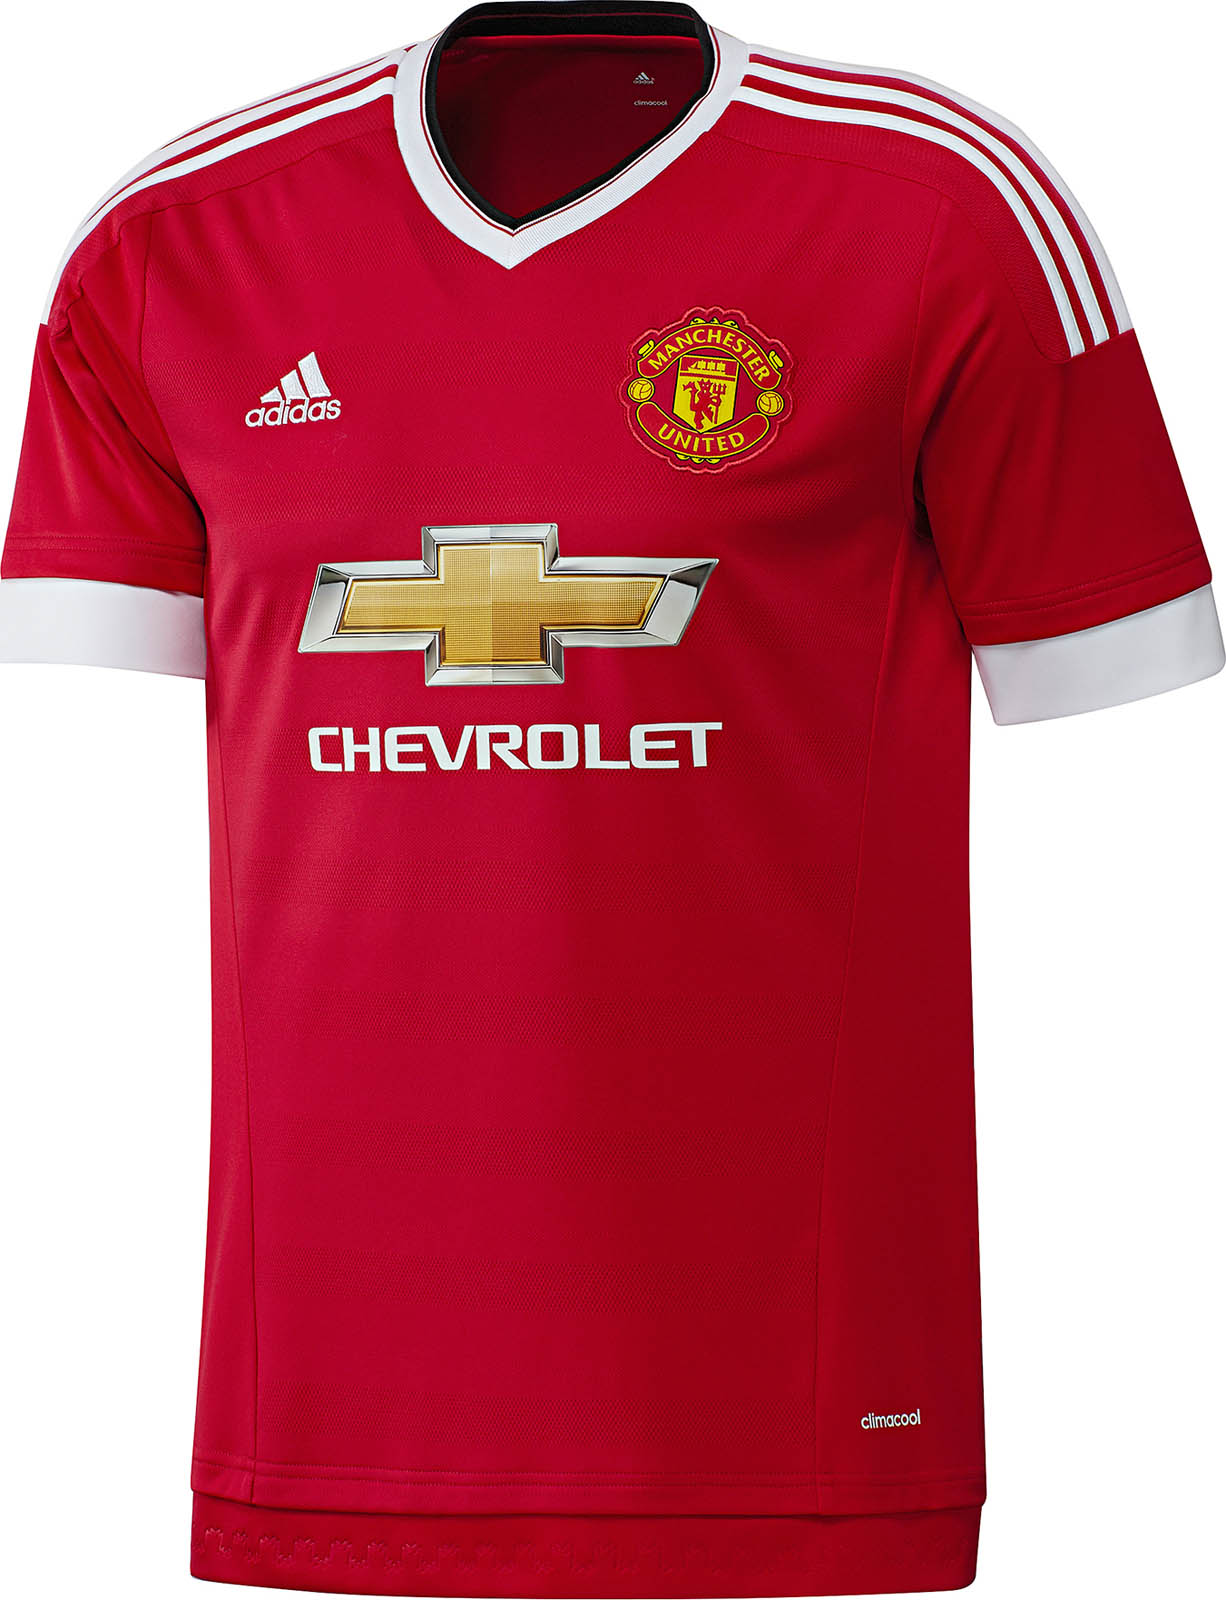 Adidas Manchester United 15-16 Kits Released